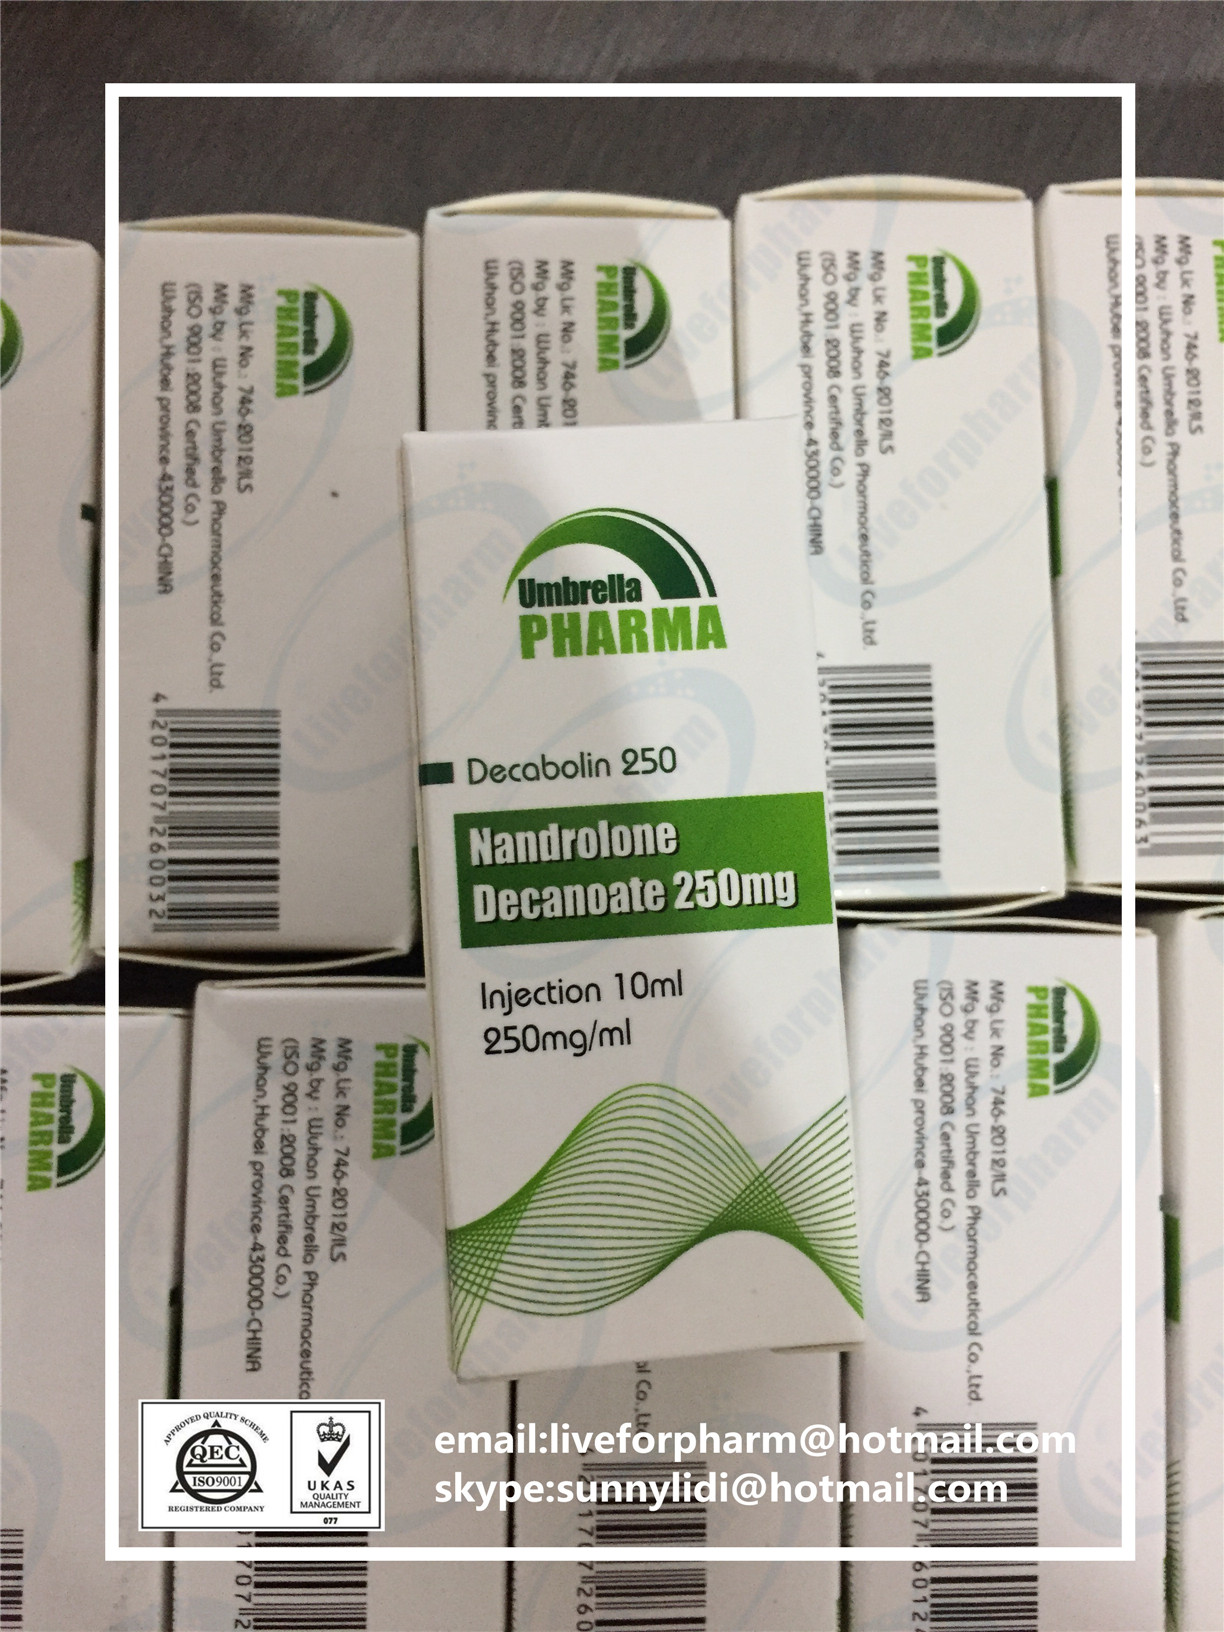 wholesale Nandrolone Decanoate 250mg10ml Decabolin 250 steroid oil 98.8% above